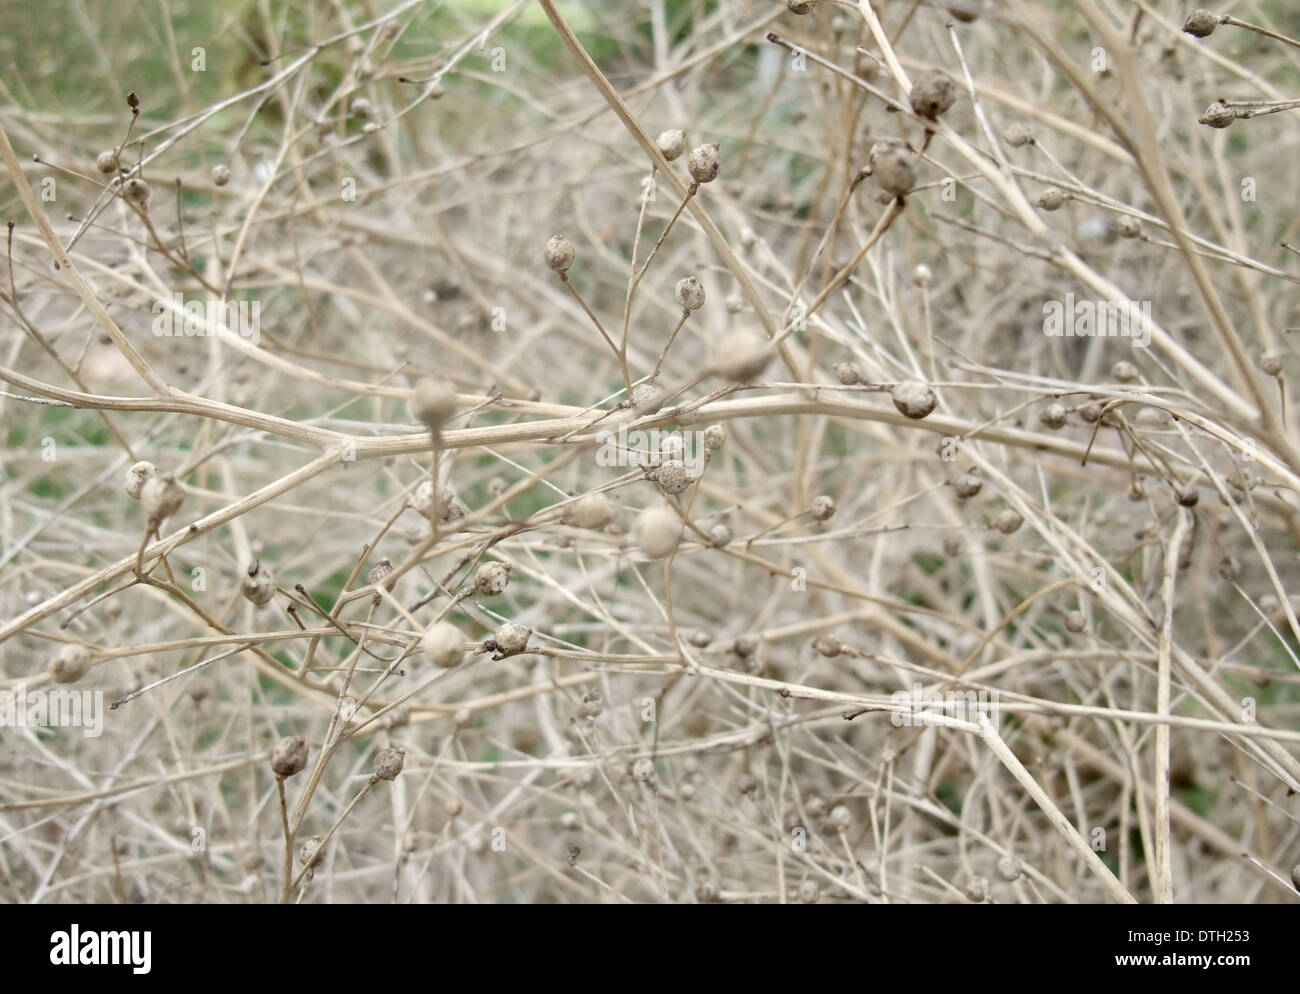 full frame abstract background showing sere twigs, stalks and stipes - Stock Image